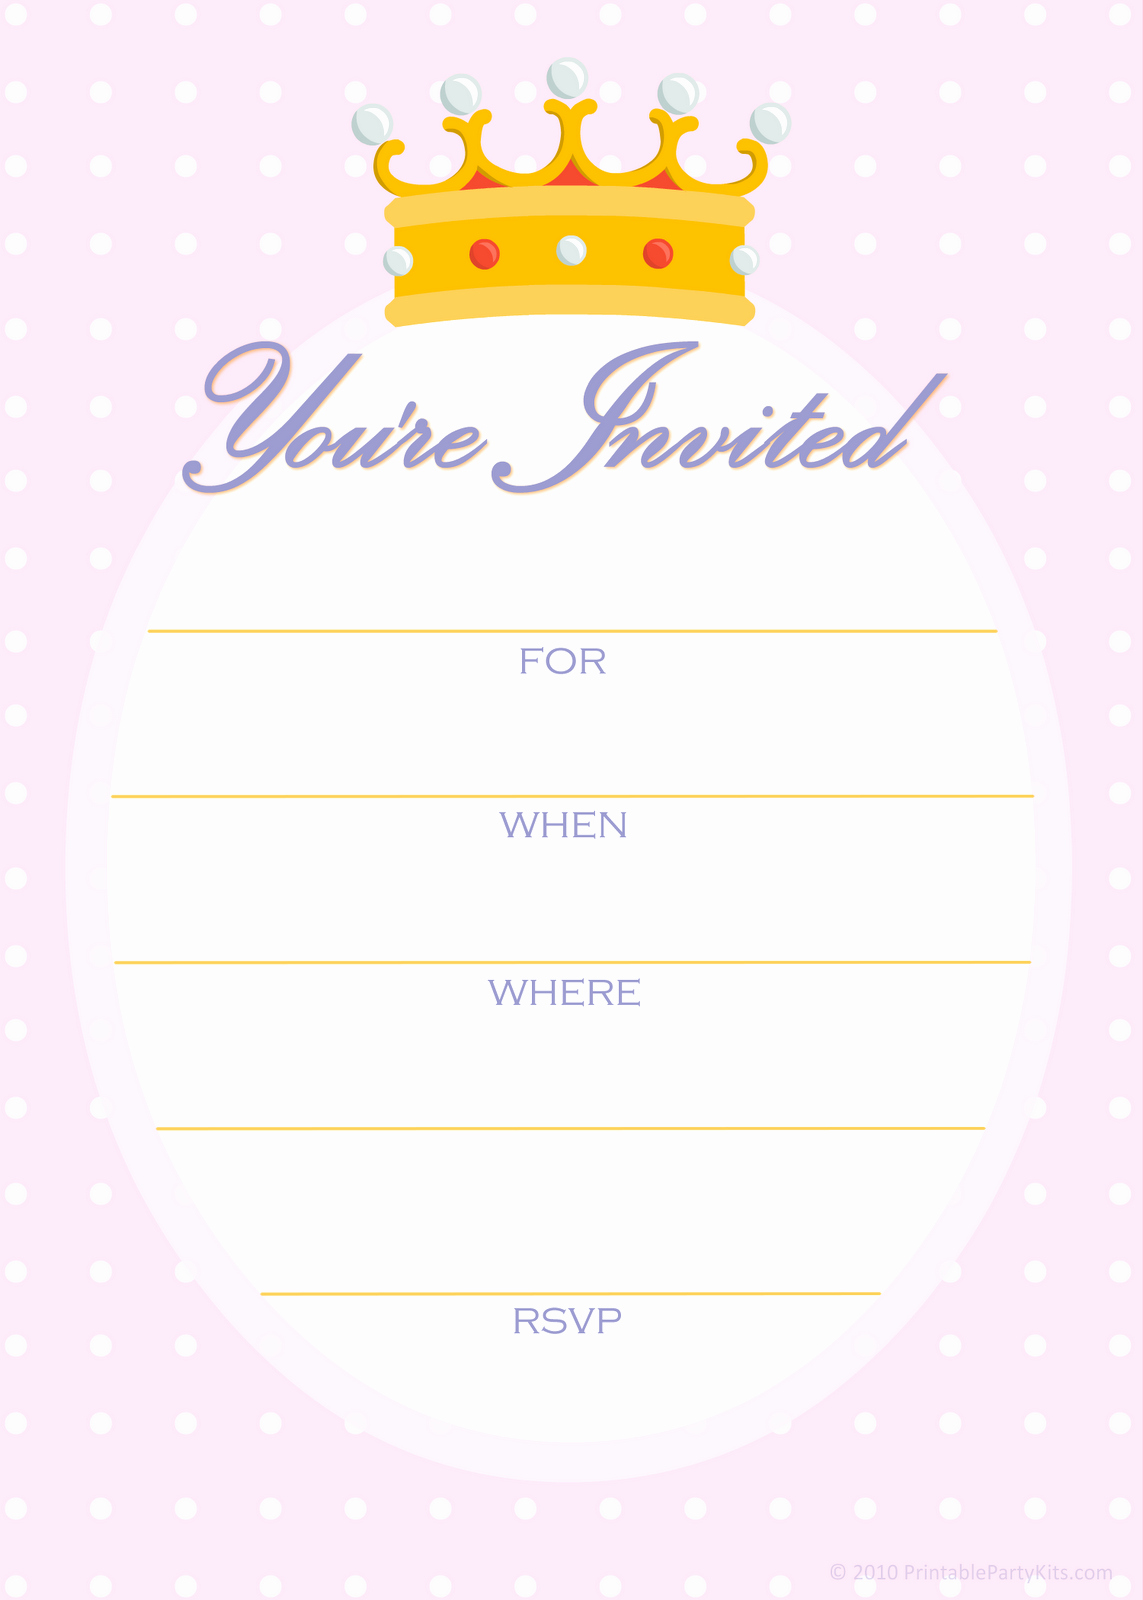 Free Printable Invitation Templates Beautiful Free Printable Golden Unicorn Birthday Invitation Template